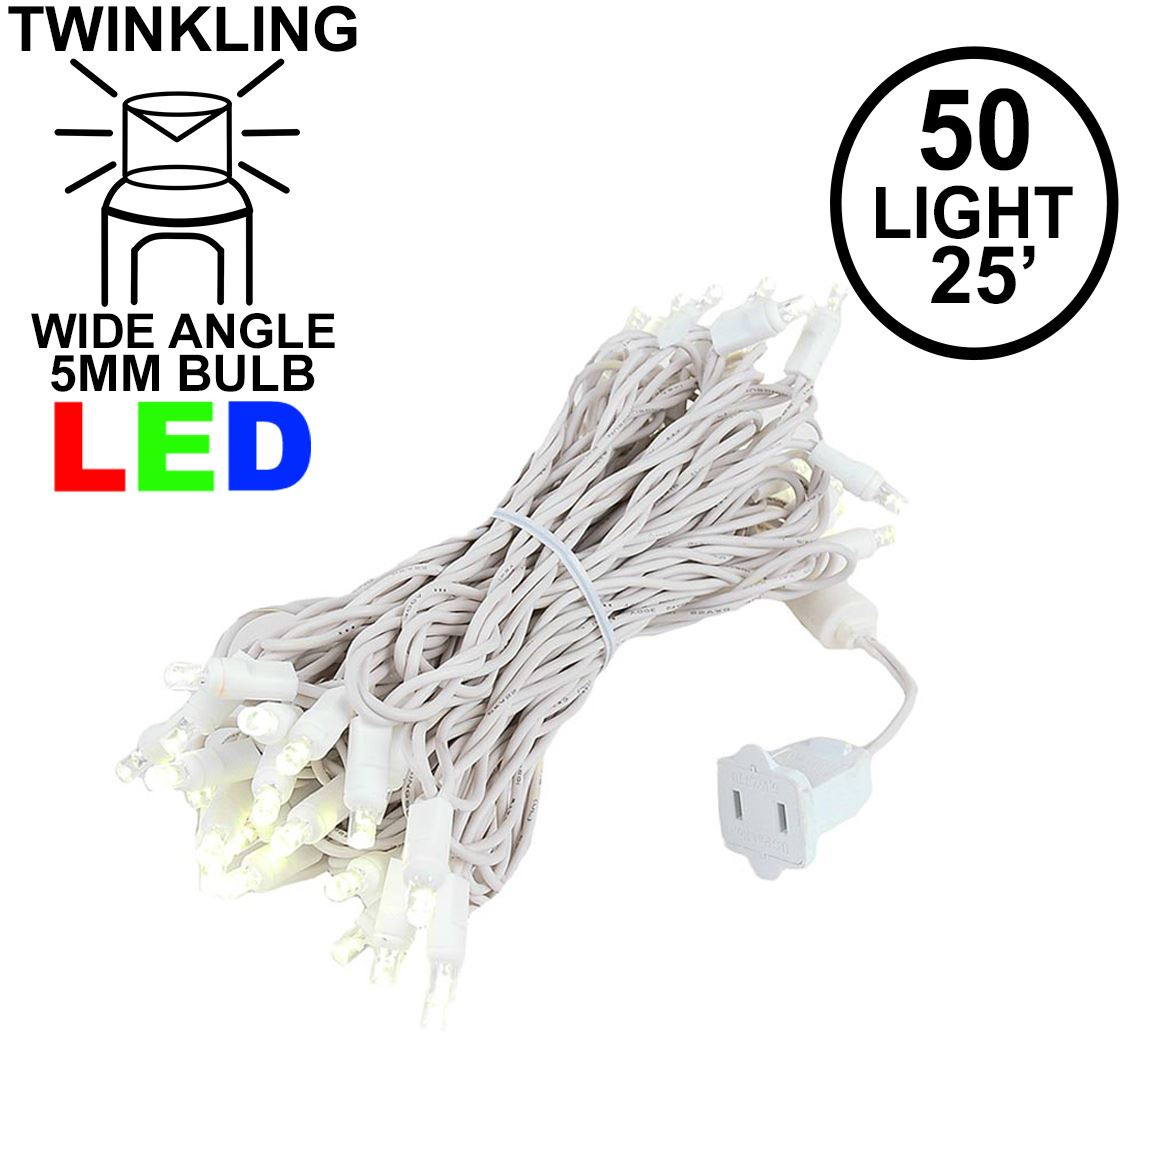 Picture of Twinkle LED Christmas Lights 50 LED Warm White 25' Long White Wire